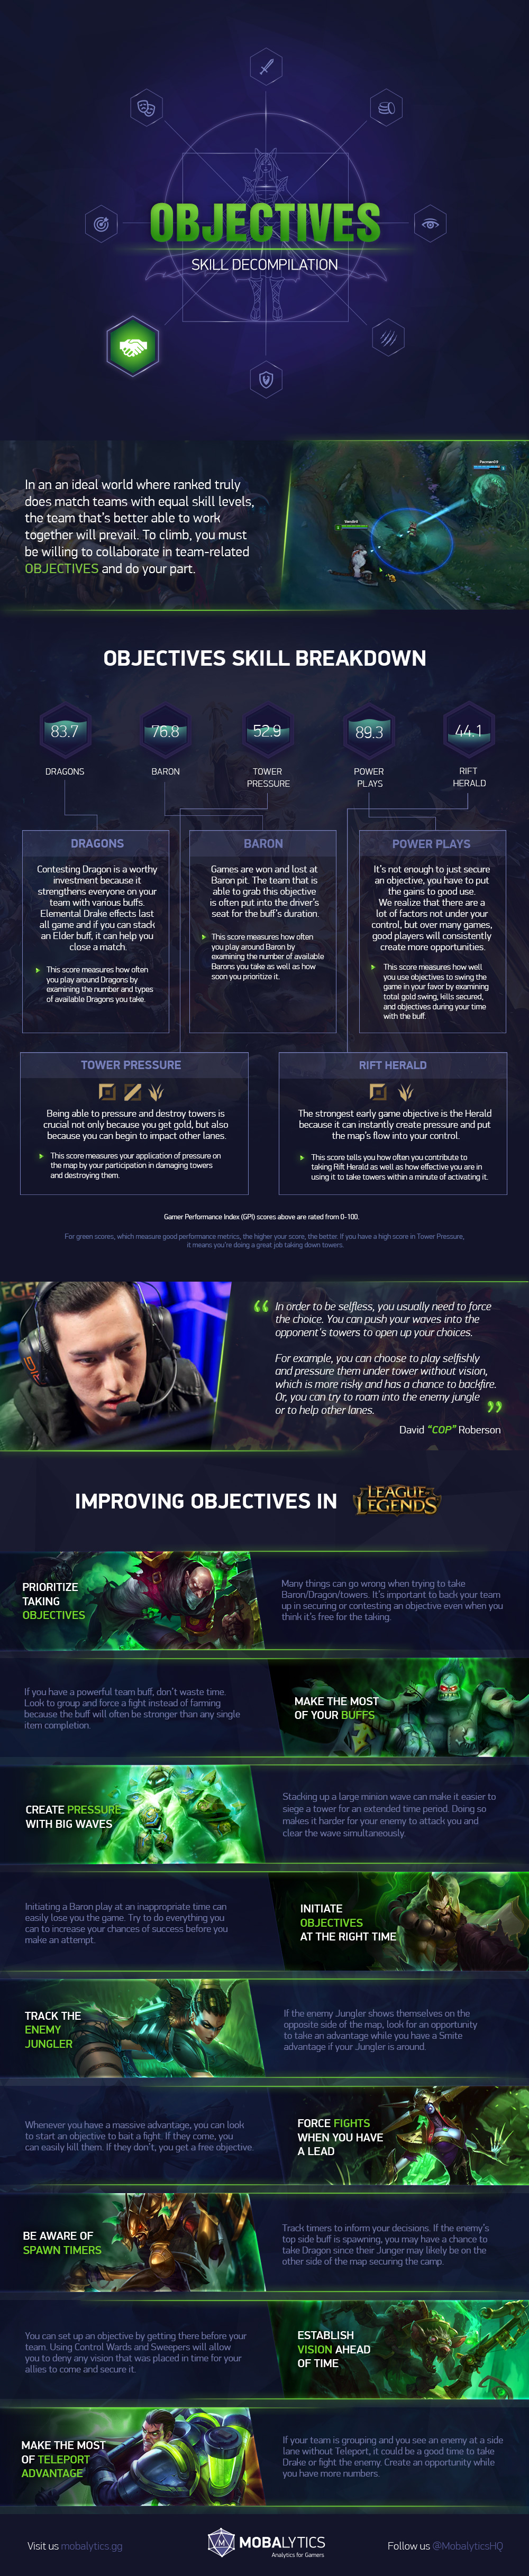 Objectives 2018 Infographic